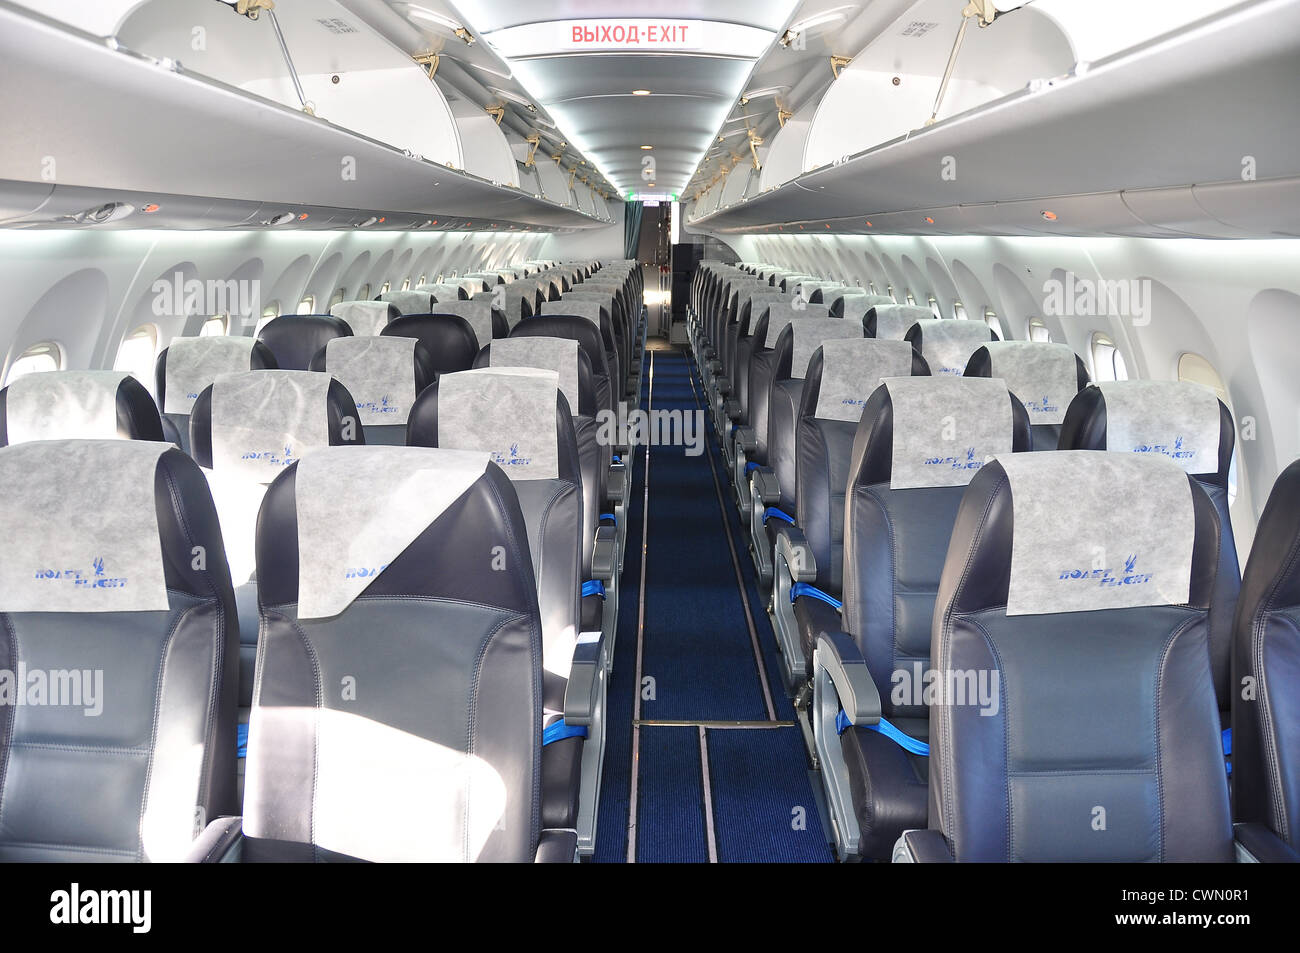 plane seats stockfotos plane seats bilder seite 20 alamy. Black Bedroom Furniture Sets. Home Design Ideas